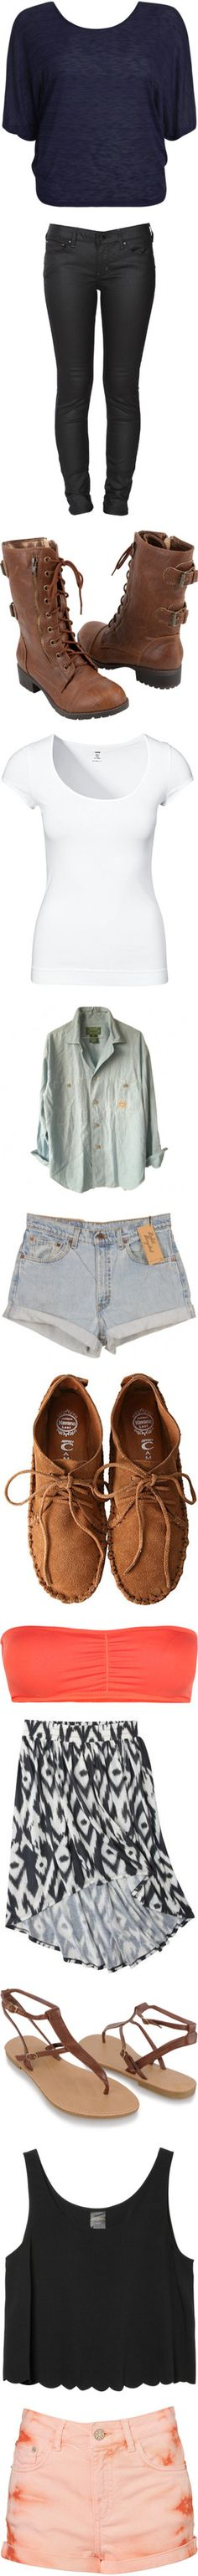 """Hipster Outfits 2"" by memecku ❤ liked on Polyvore"